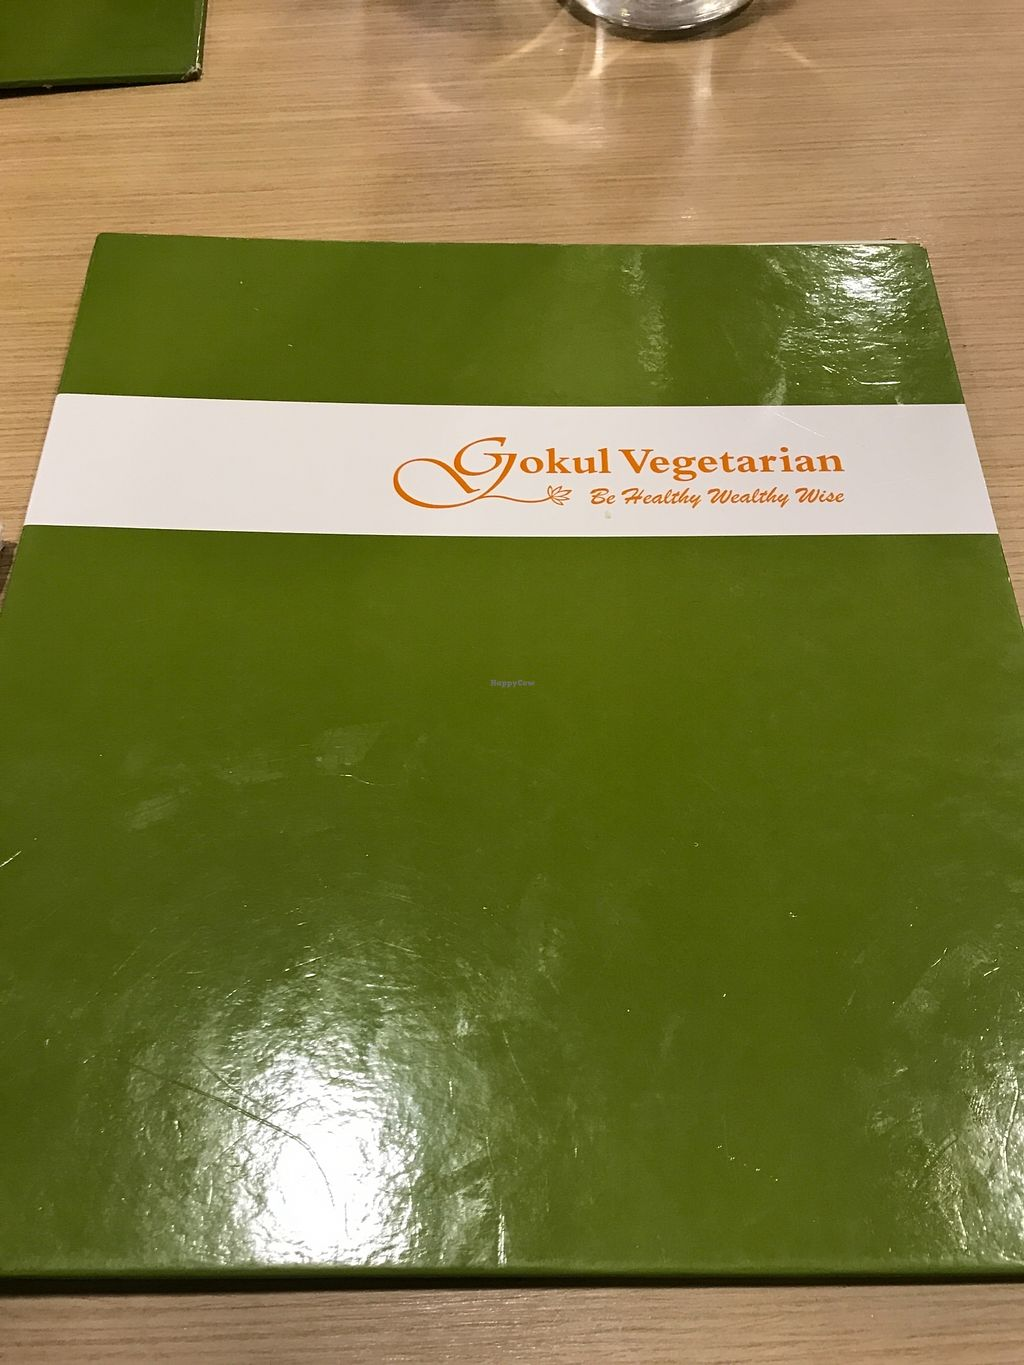 "Photo of Gokul Vegetarian Restaurant and Cafe  by <a href=""/members/profile/Sweetveganneko"">Sweetveganneko</a> <br/>Menu <br/> March 18, 2018  - <a href='/contact/abuse/image/4455/372666'>Report</a>"